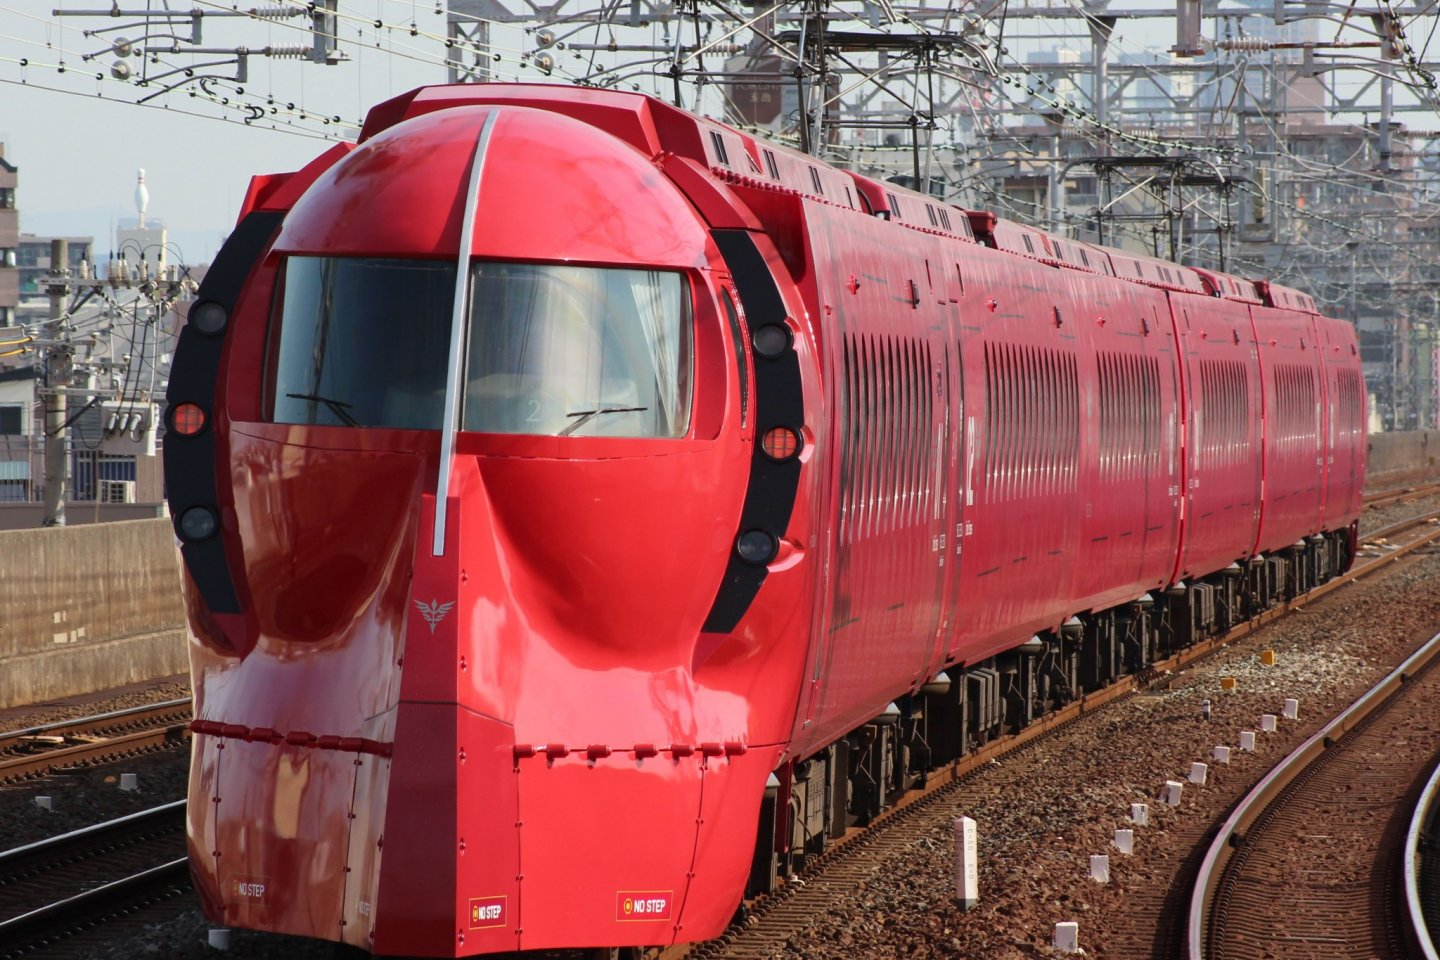 Nankai in red livery commemorating the Mobile Suit Gundam Unicorn series